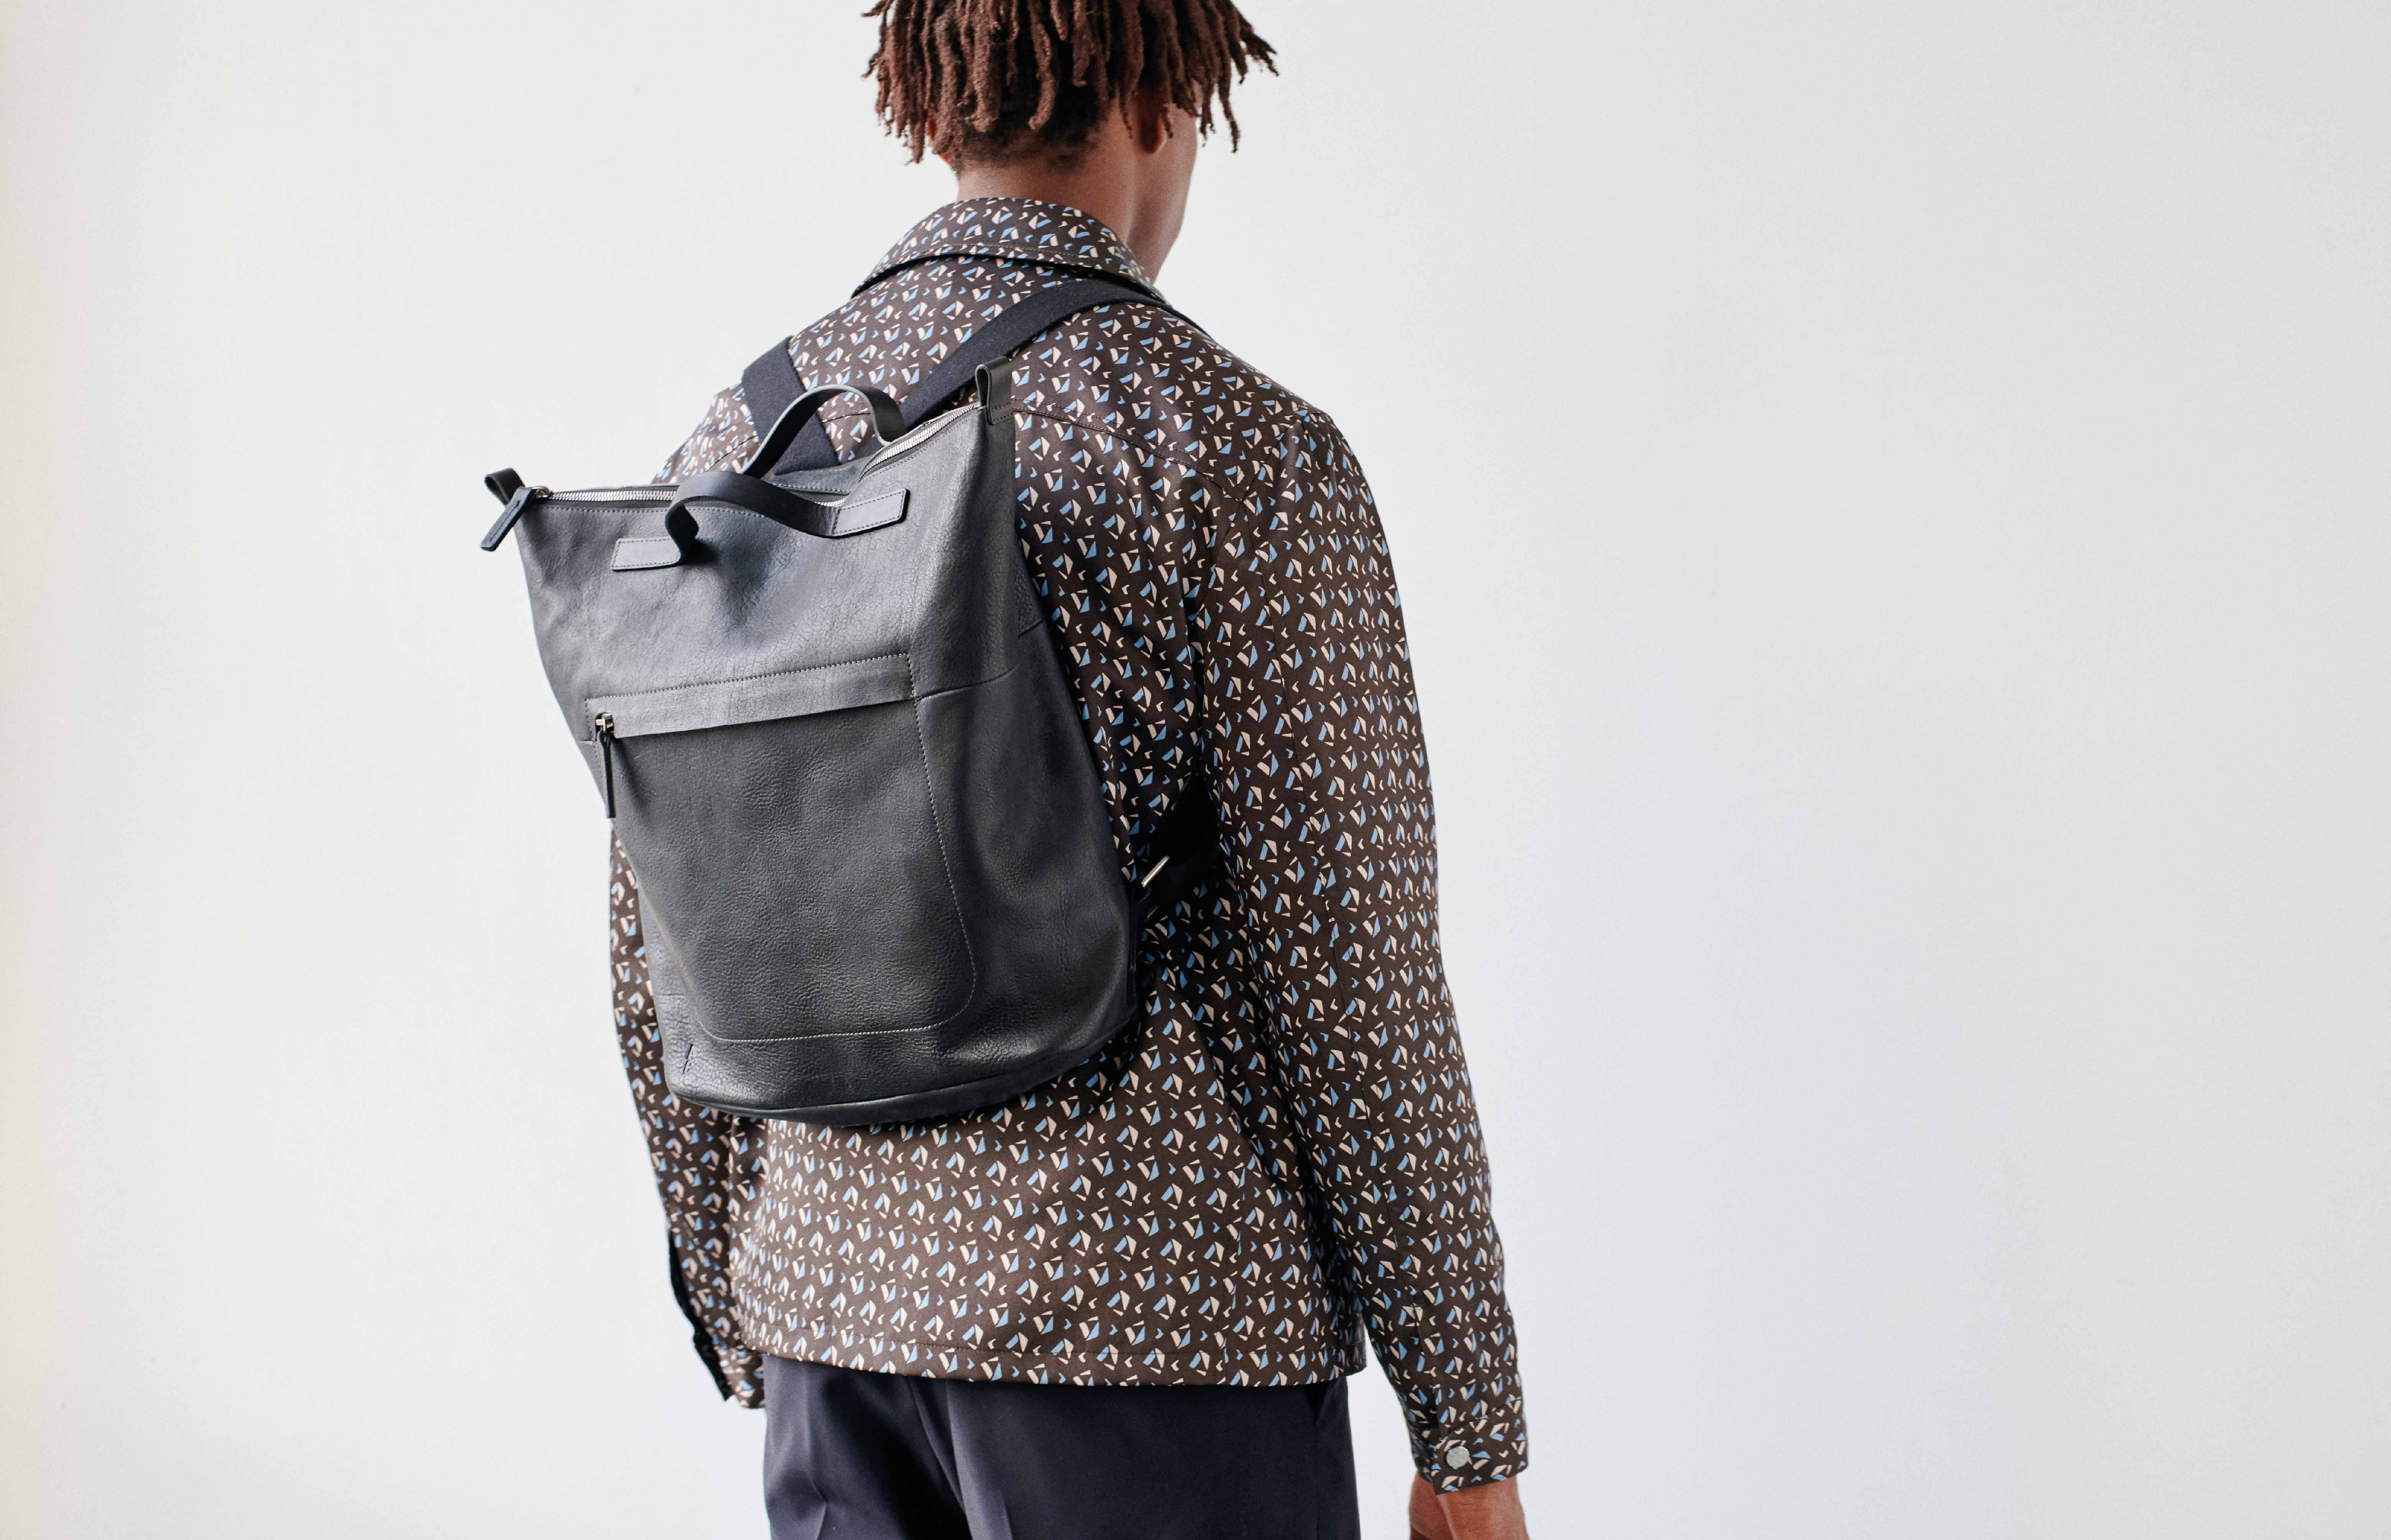 Why backpacks aren't just for back-to-school